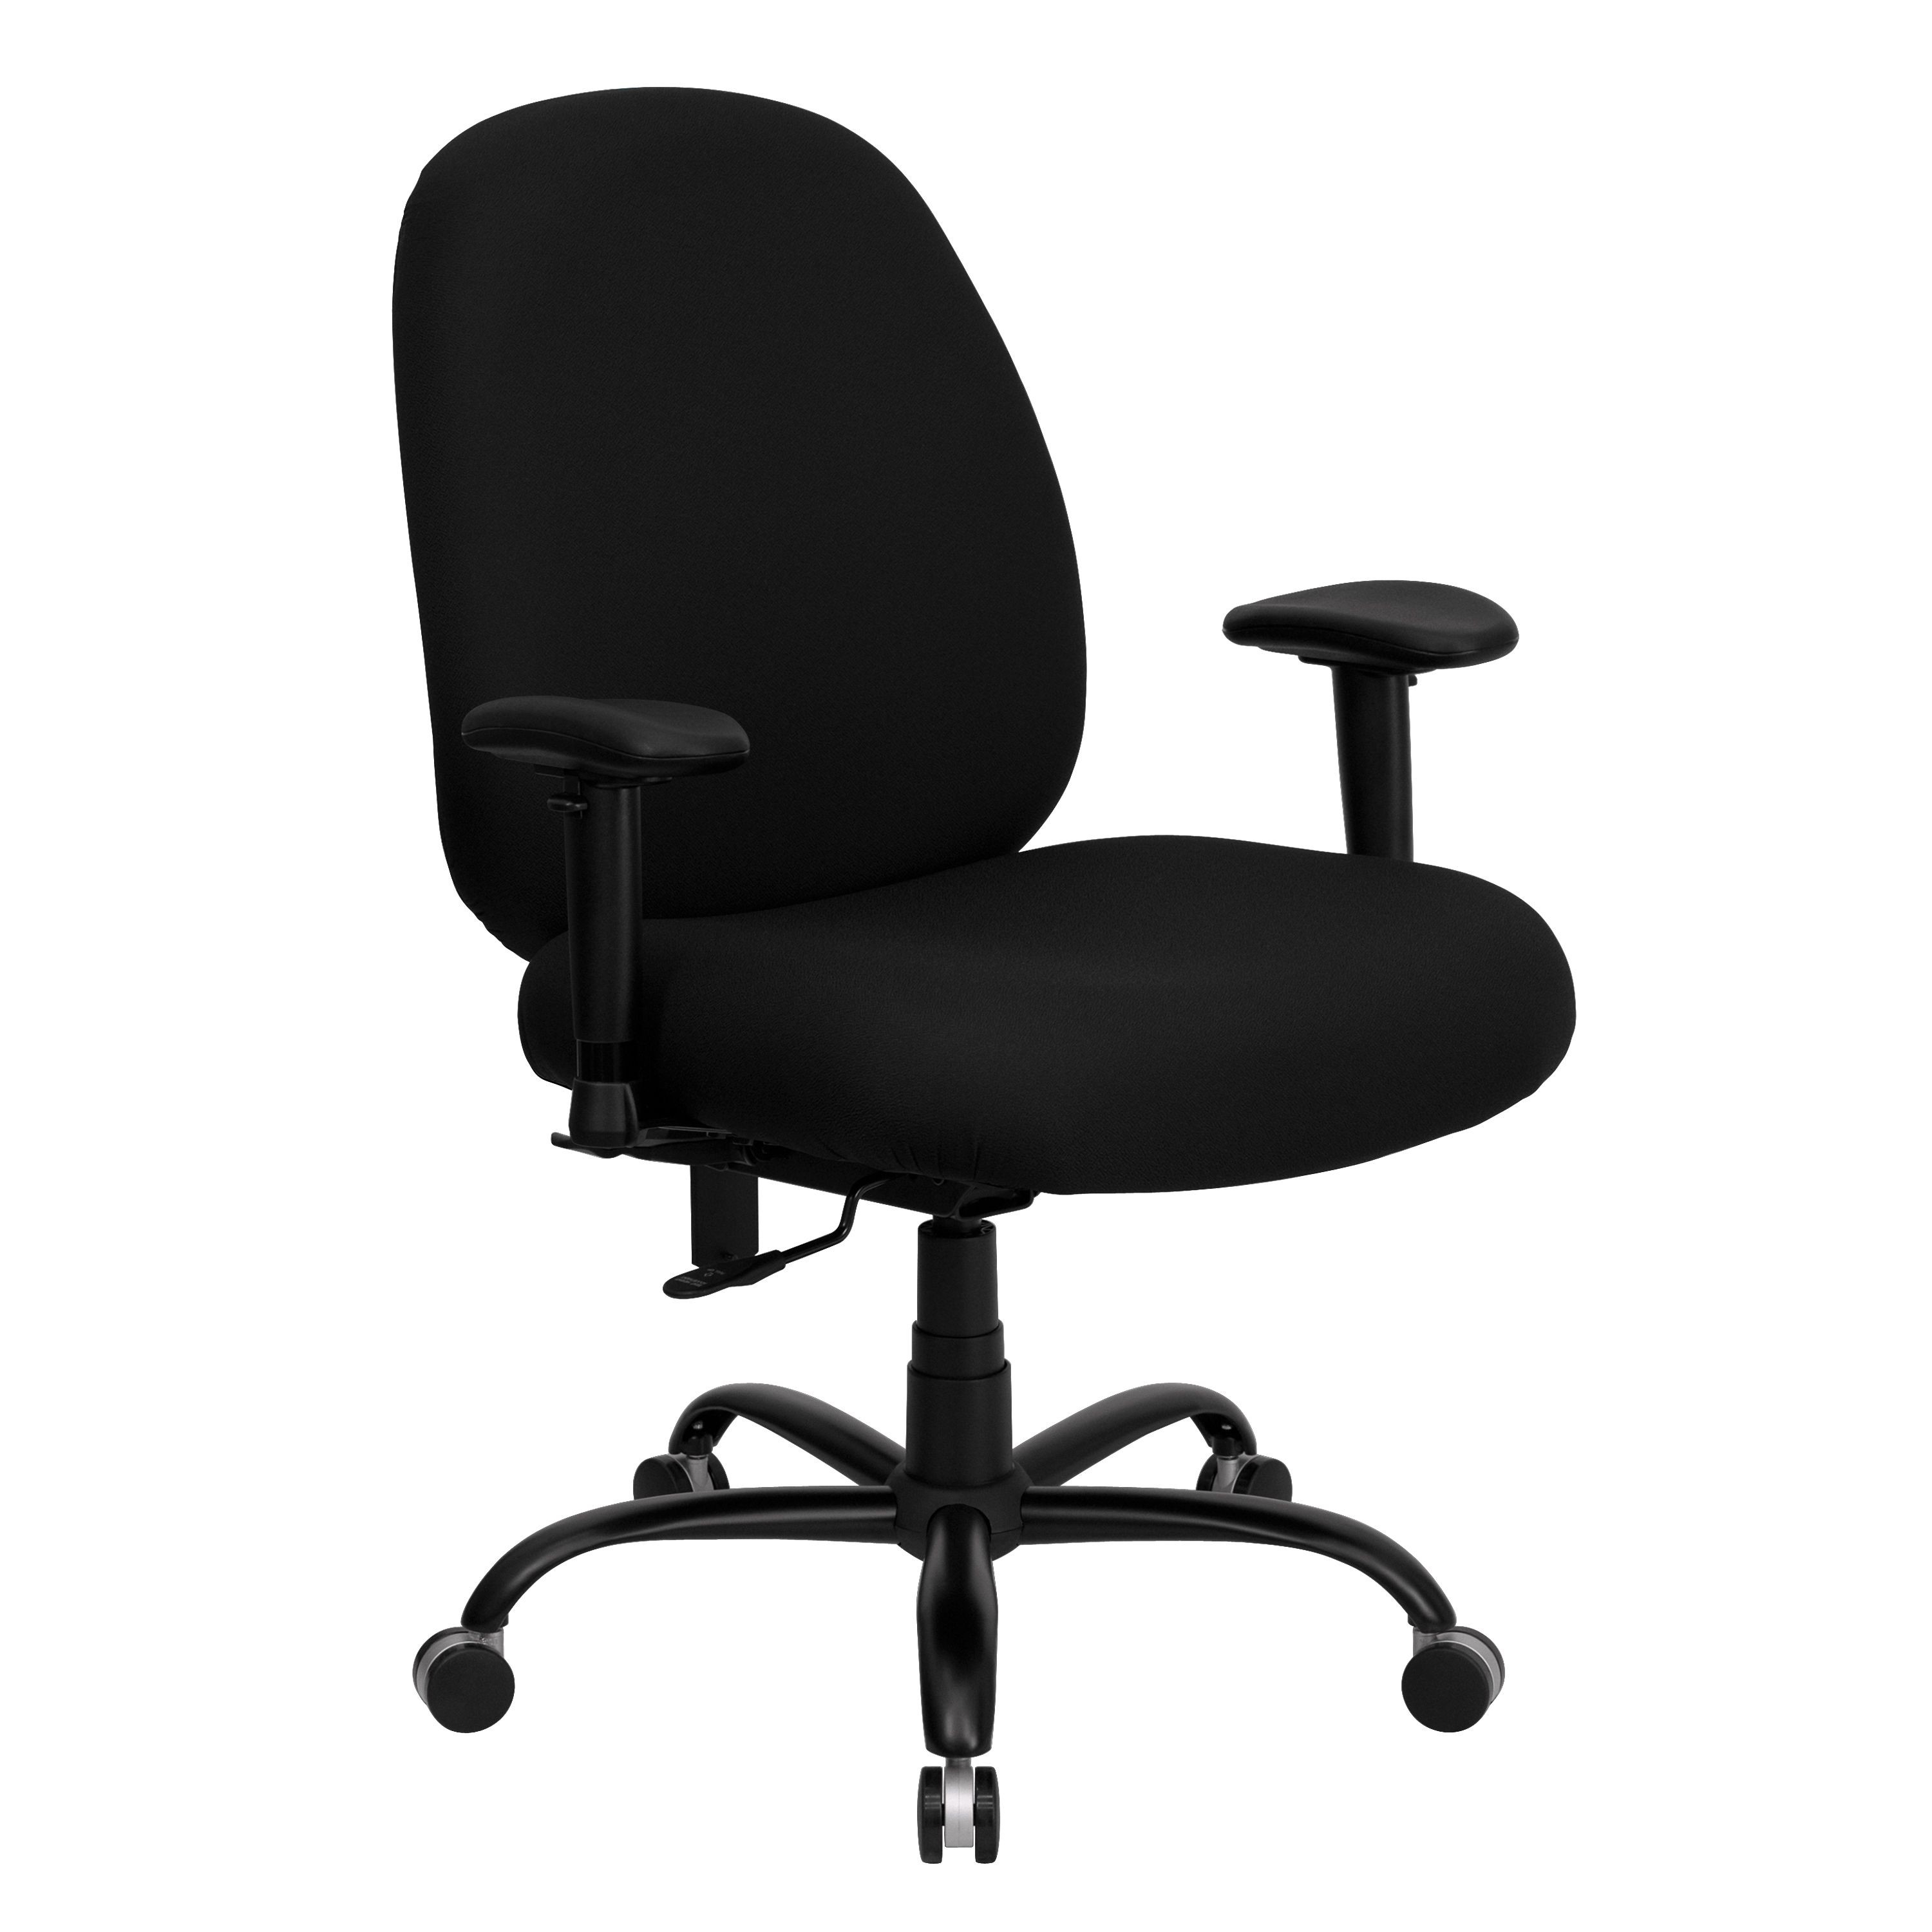 Flash Furniture WL-715MG-BK-A-GG Big & Tall Black Fabric Task Chair with Arms, 400 Lb. Capacity